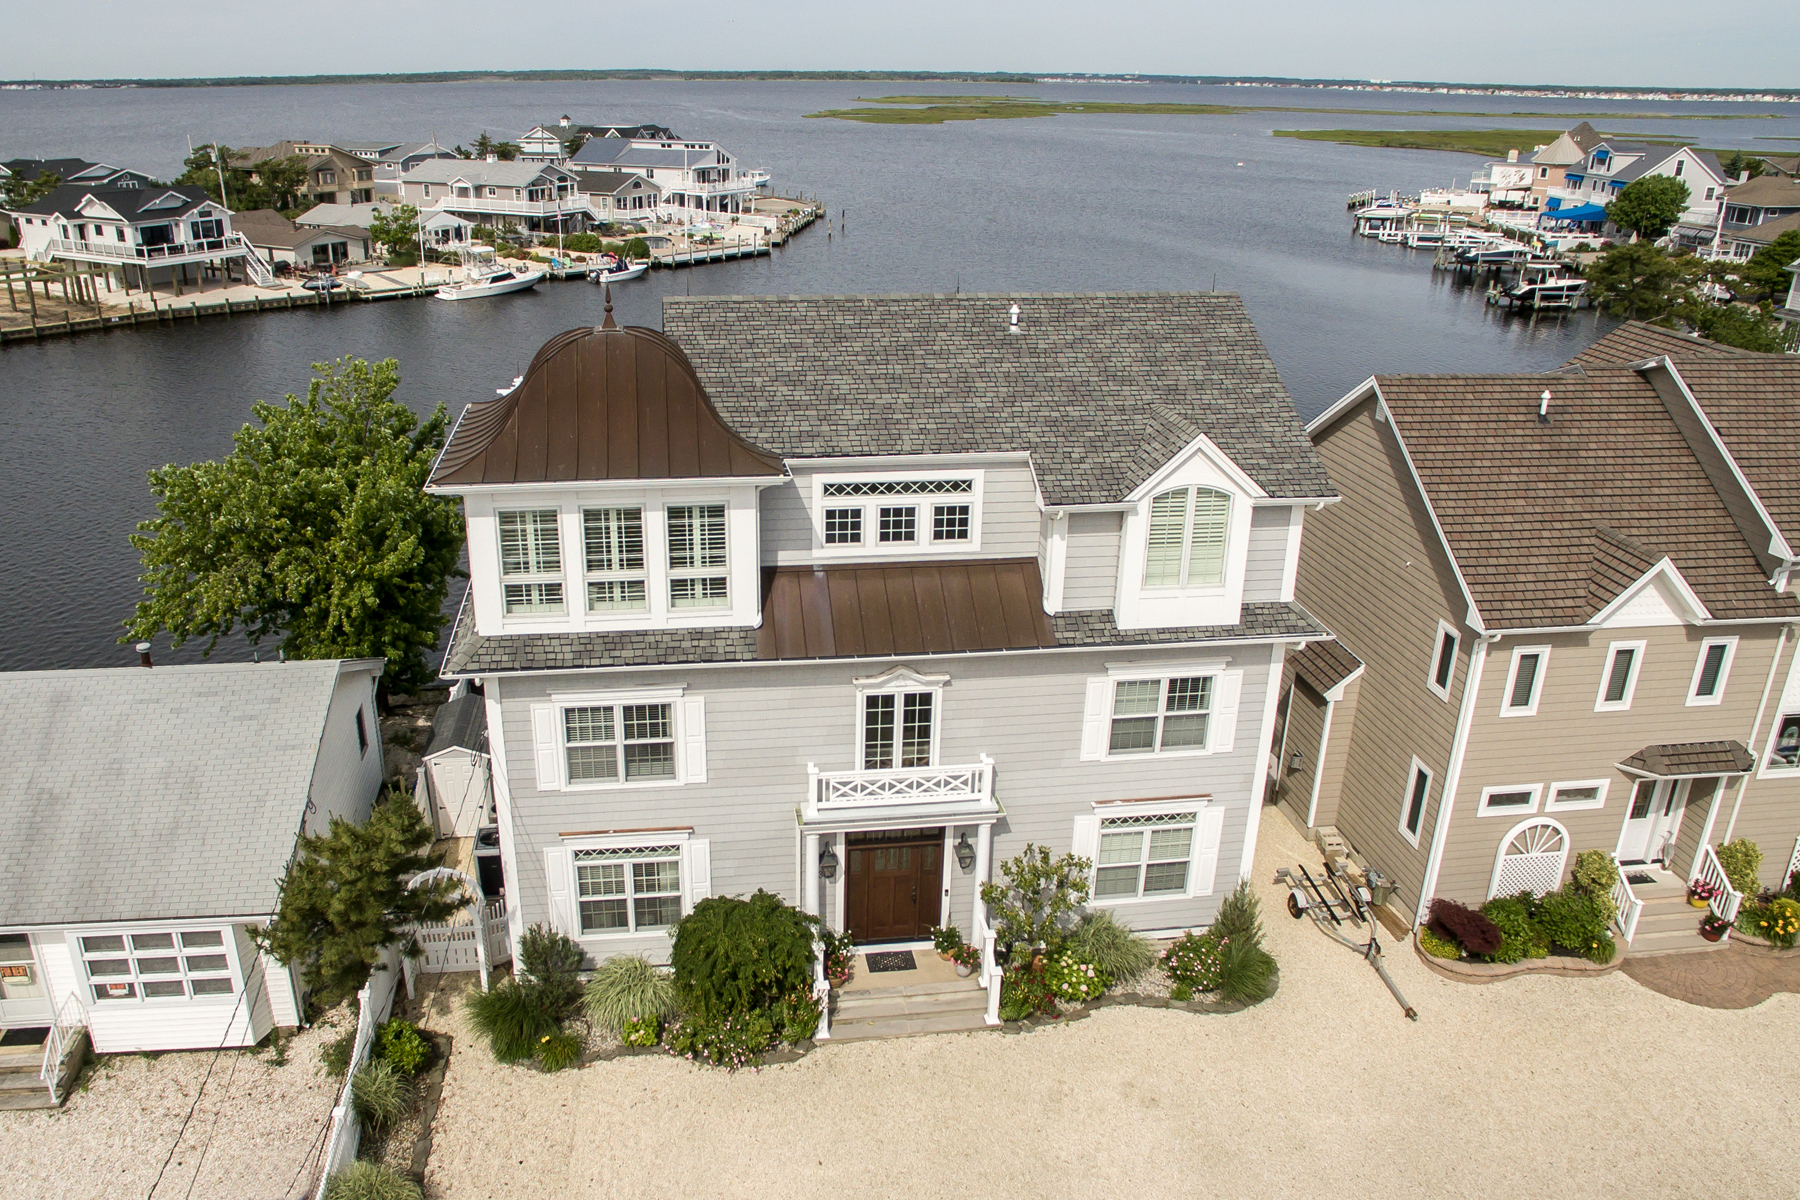 single family homes vì Bán tại Beautiful Covefrontt Shore Colonial With Open Bay Views 355 Orlando Drive, Lavallette, New Jersey 08735 Hoa Kỳ